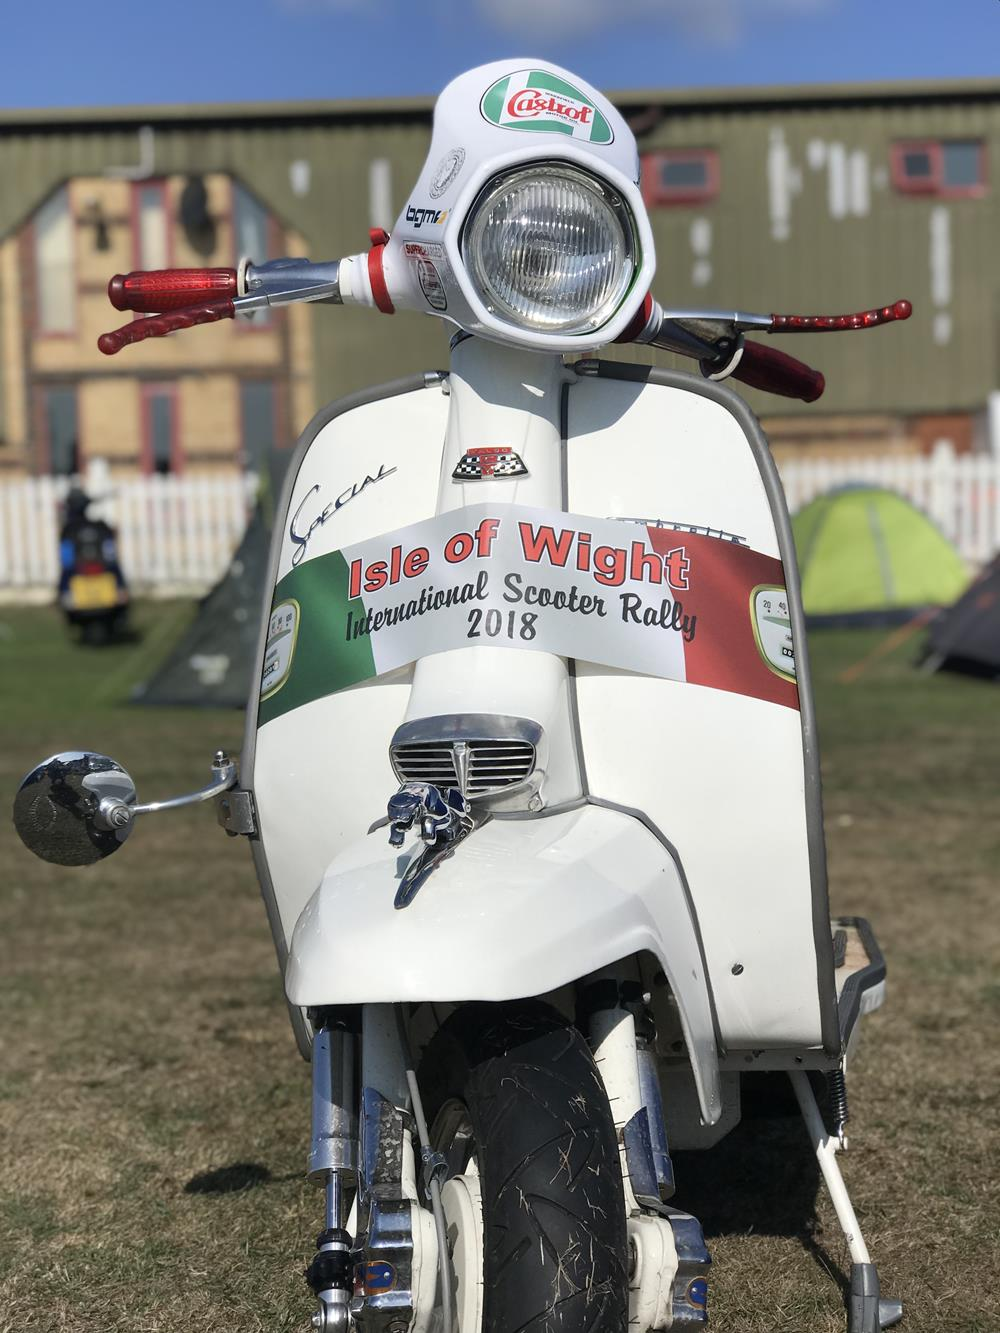 Lambretta with Isle of Wight scooter rally legshield banner